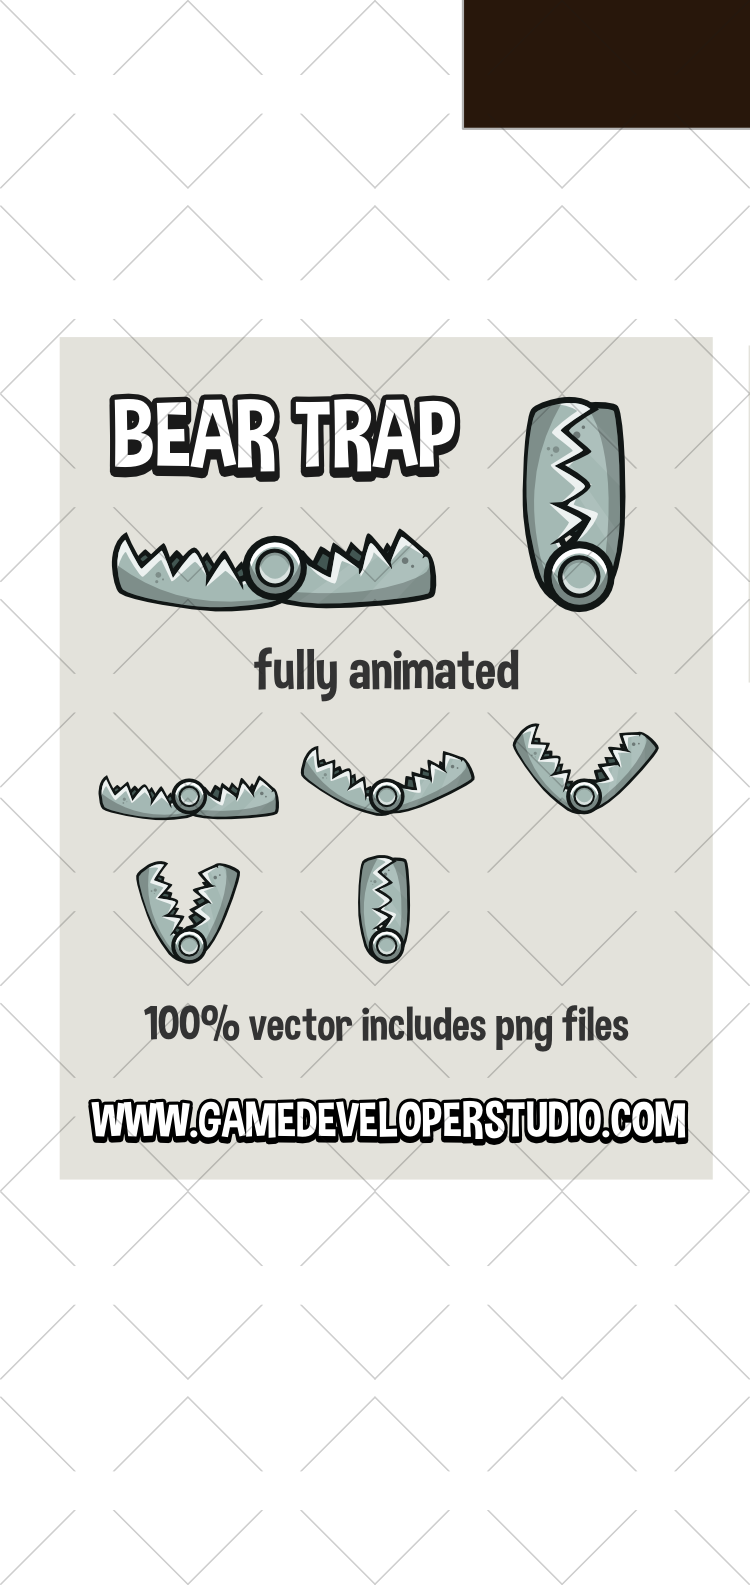 Animated snapping bear trap